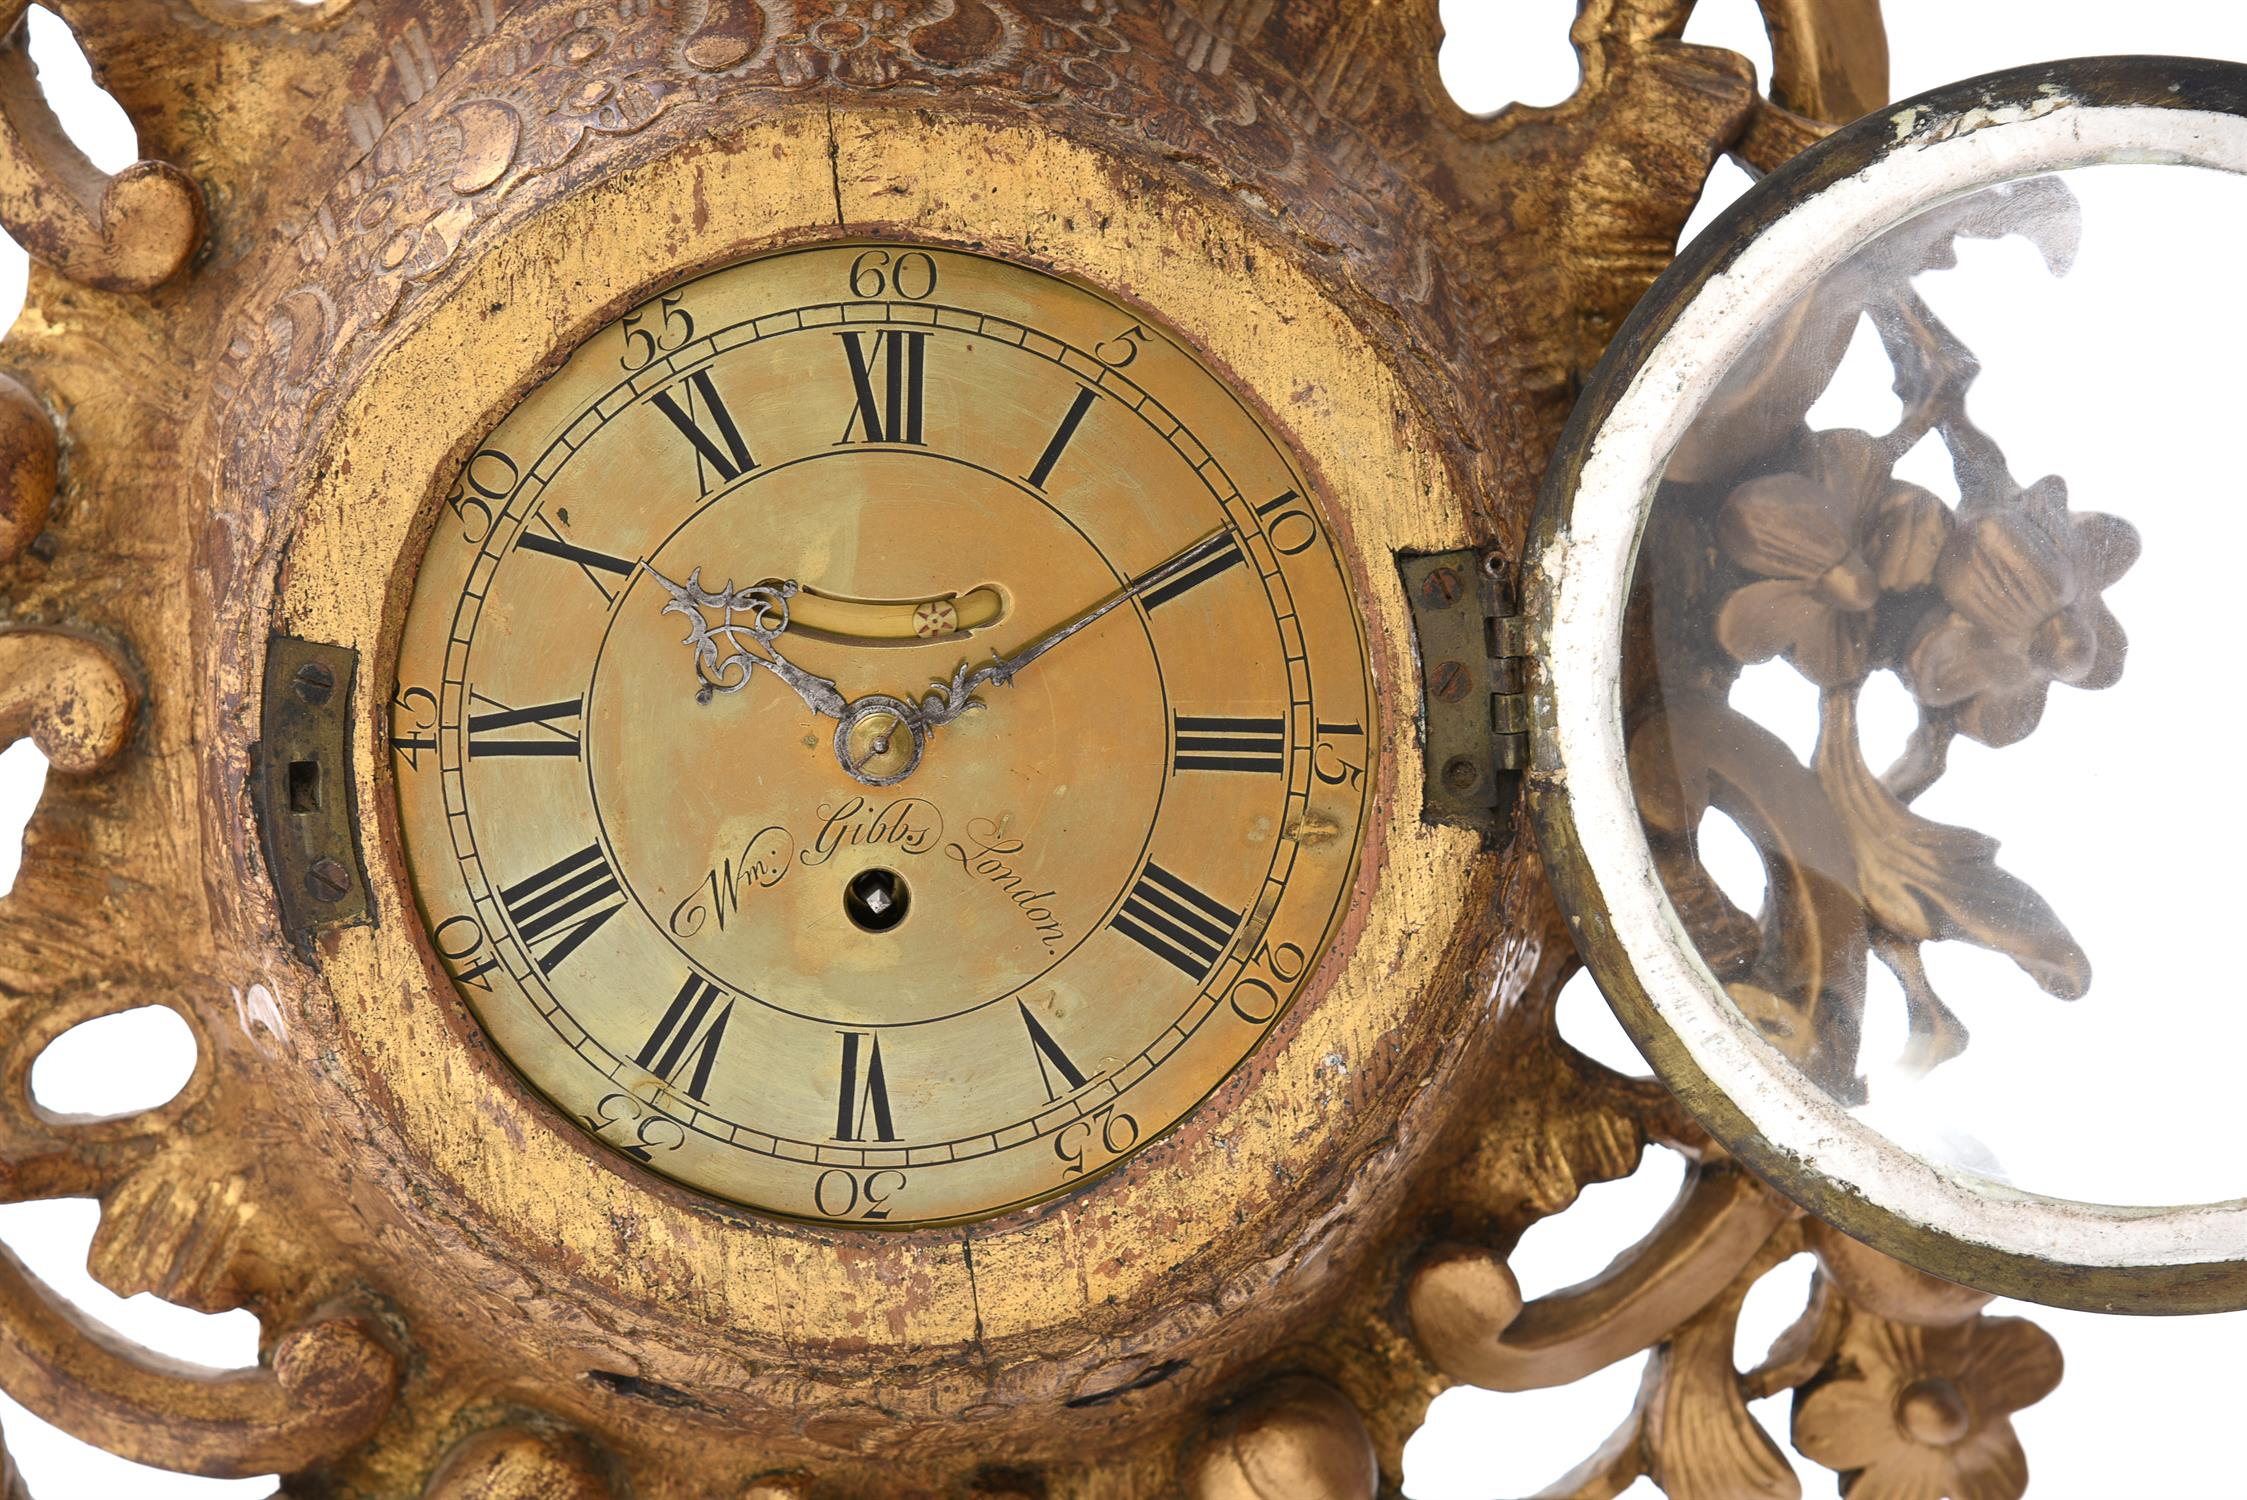 A George III giltwood cartel wall timepiece with seven inch dial - Image 2 of 3